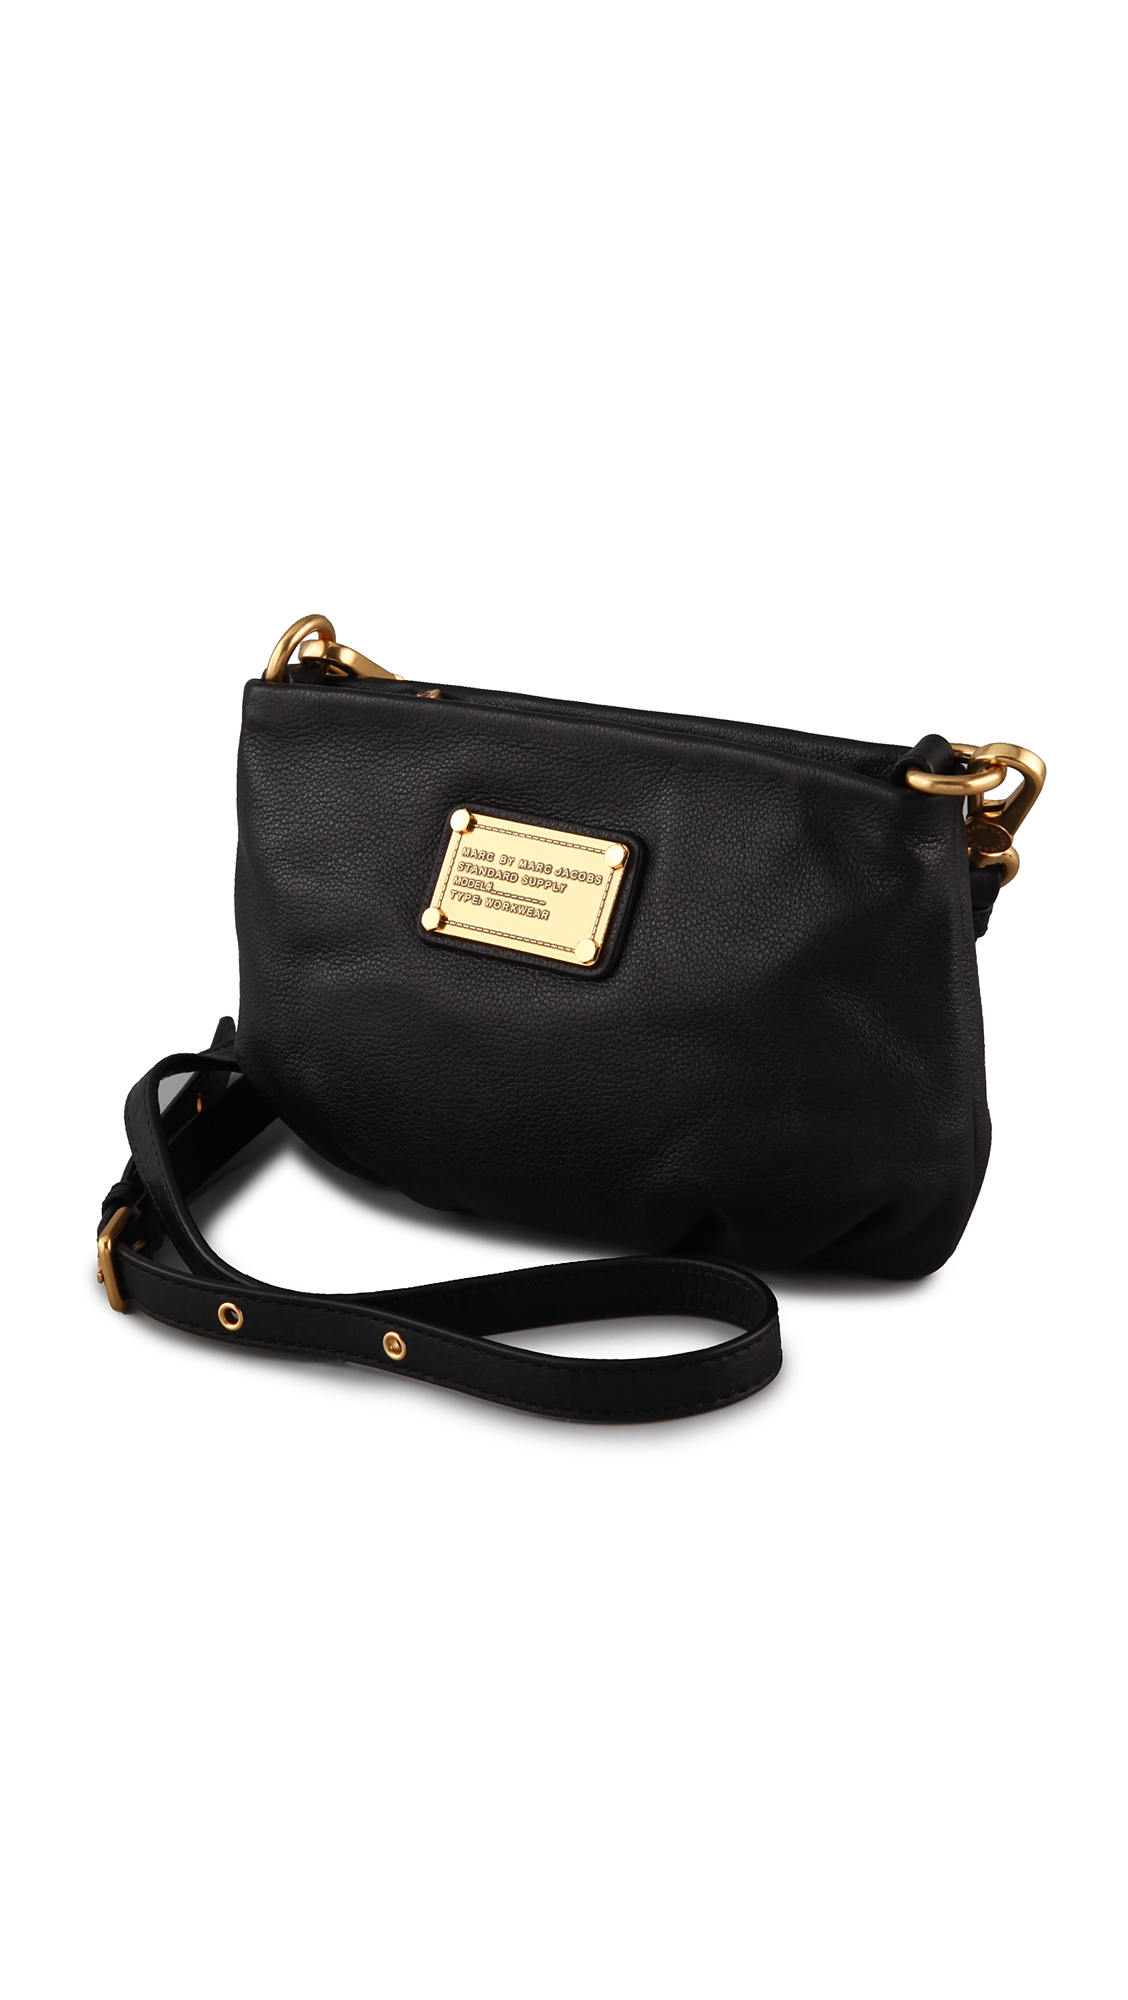 3cf820a847 Marc by Marc Jacobs Classic Q Percy Bag